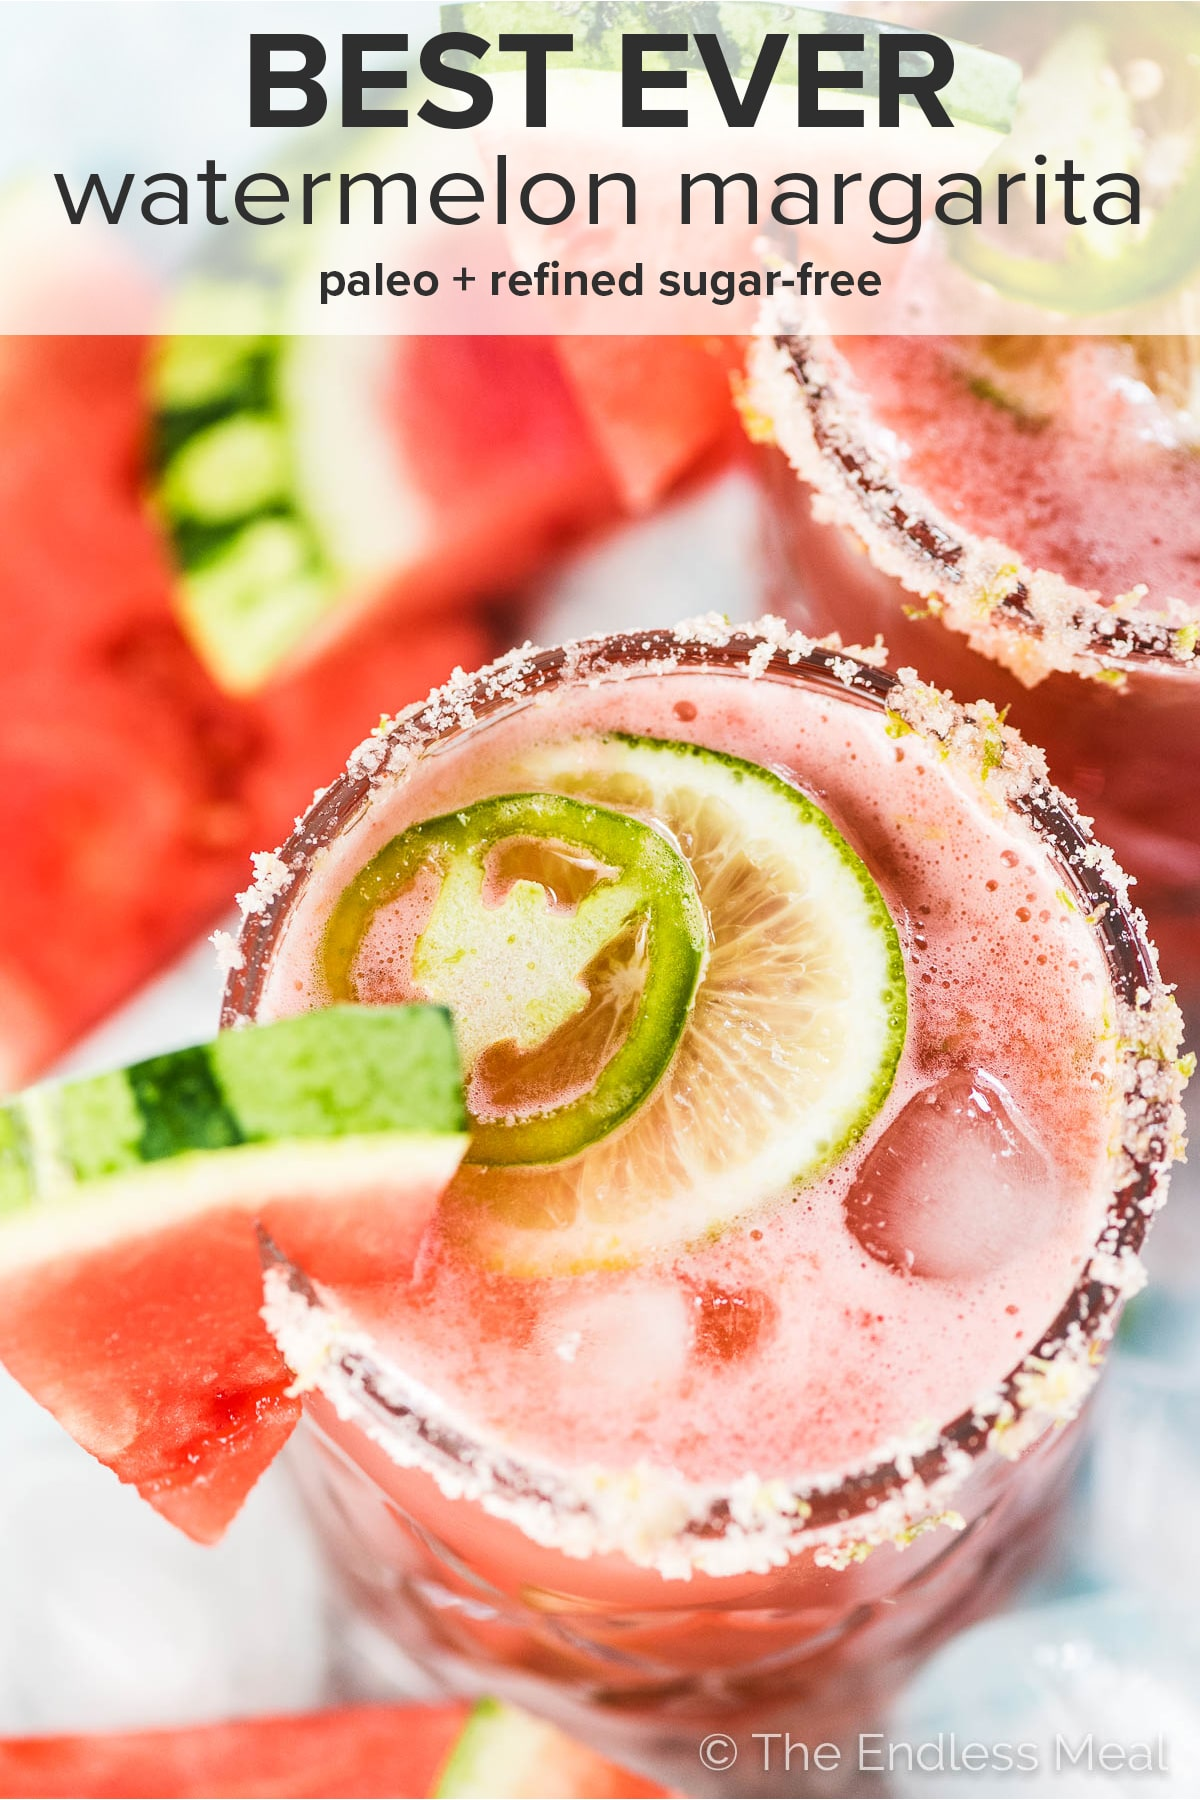 A pink watermelon margarita with the recipe title at the top of the picture.